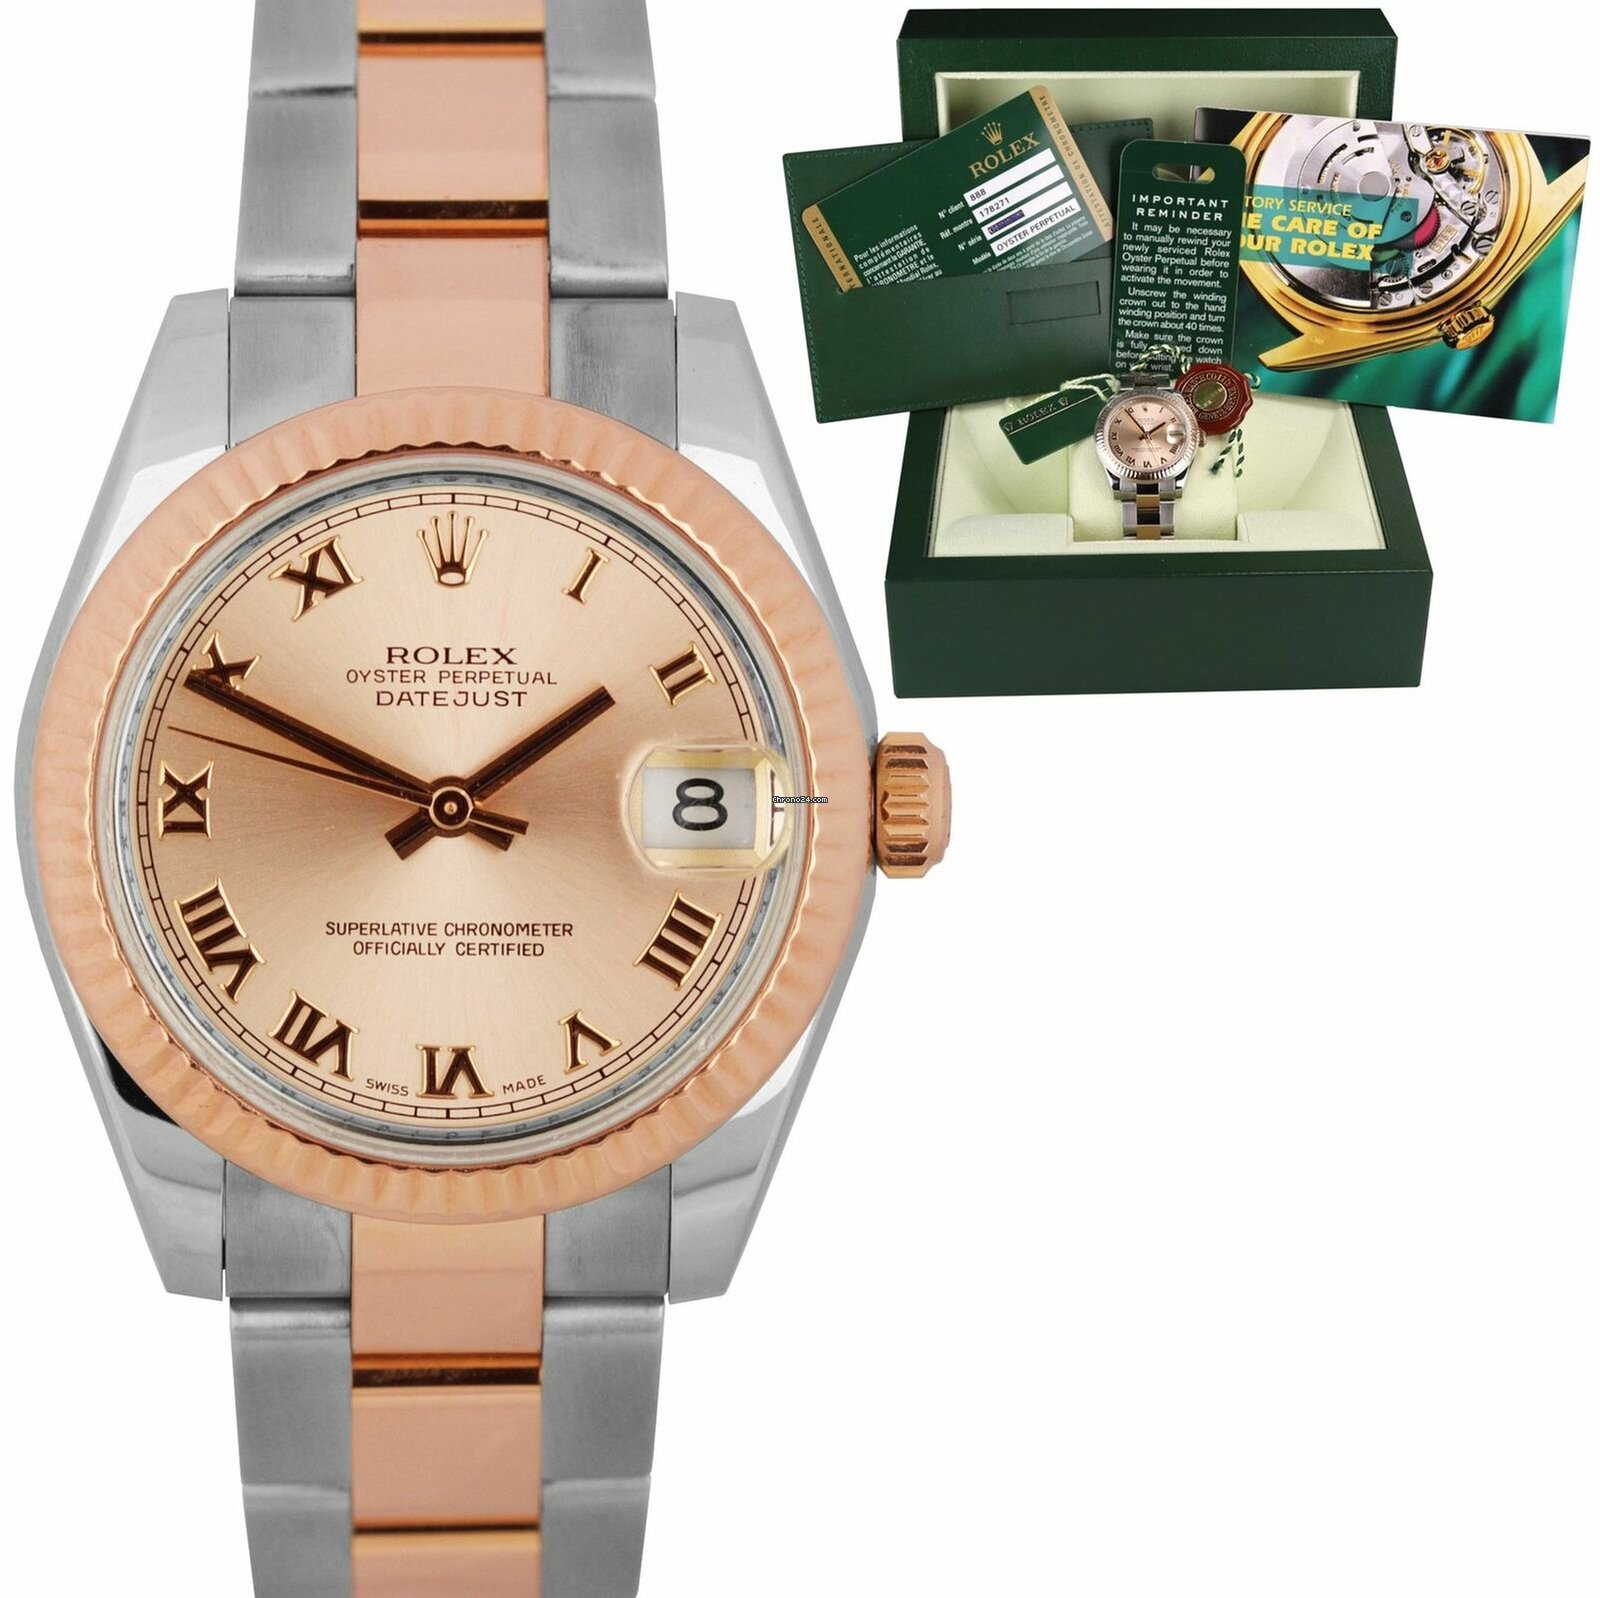 bbeb92ee6d7 Rolex 2010 Ladies Rolex DateJust 31 178271 Rose Gold Two Tone... for $8,293  for sale from a Trusted Seller on Chrono24